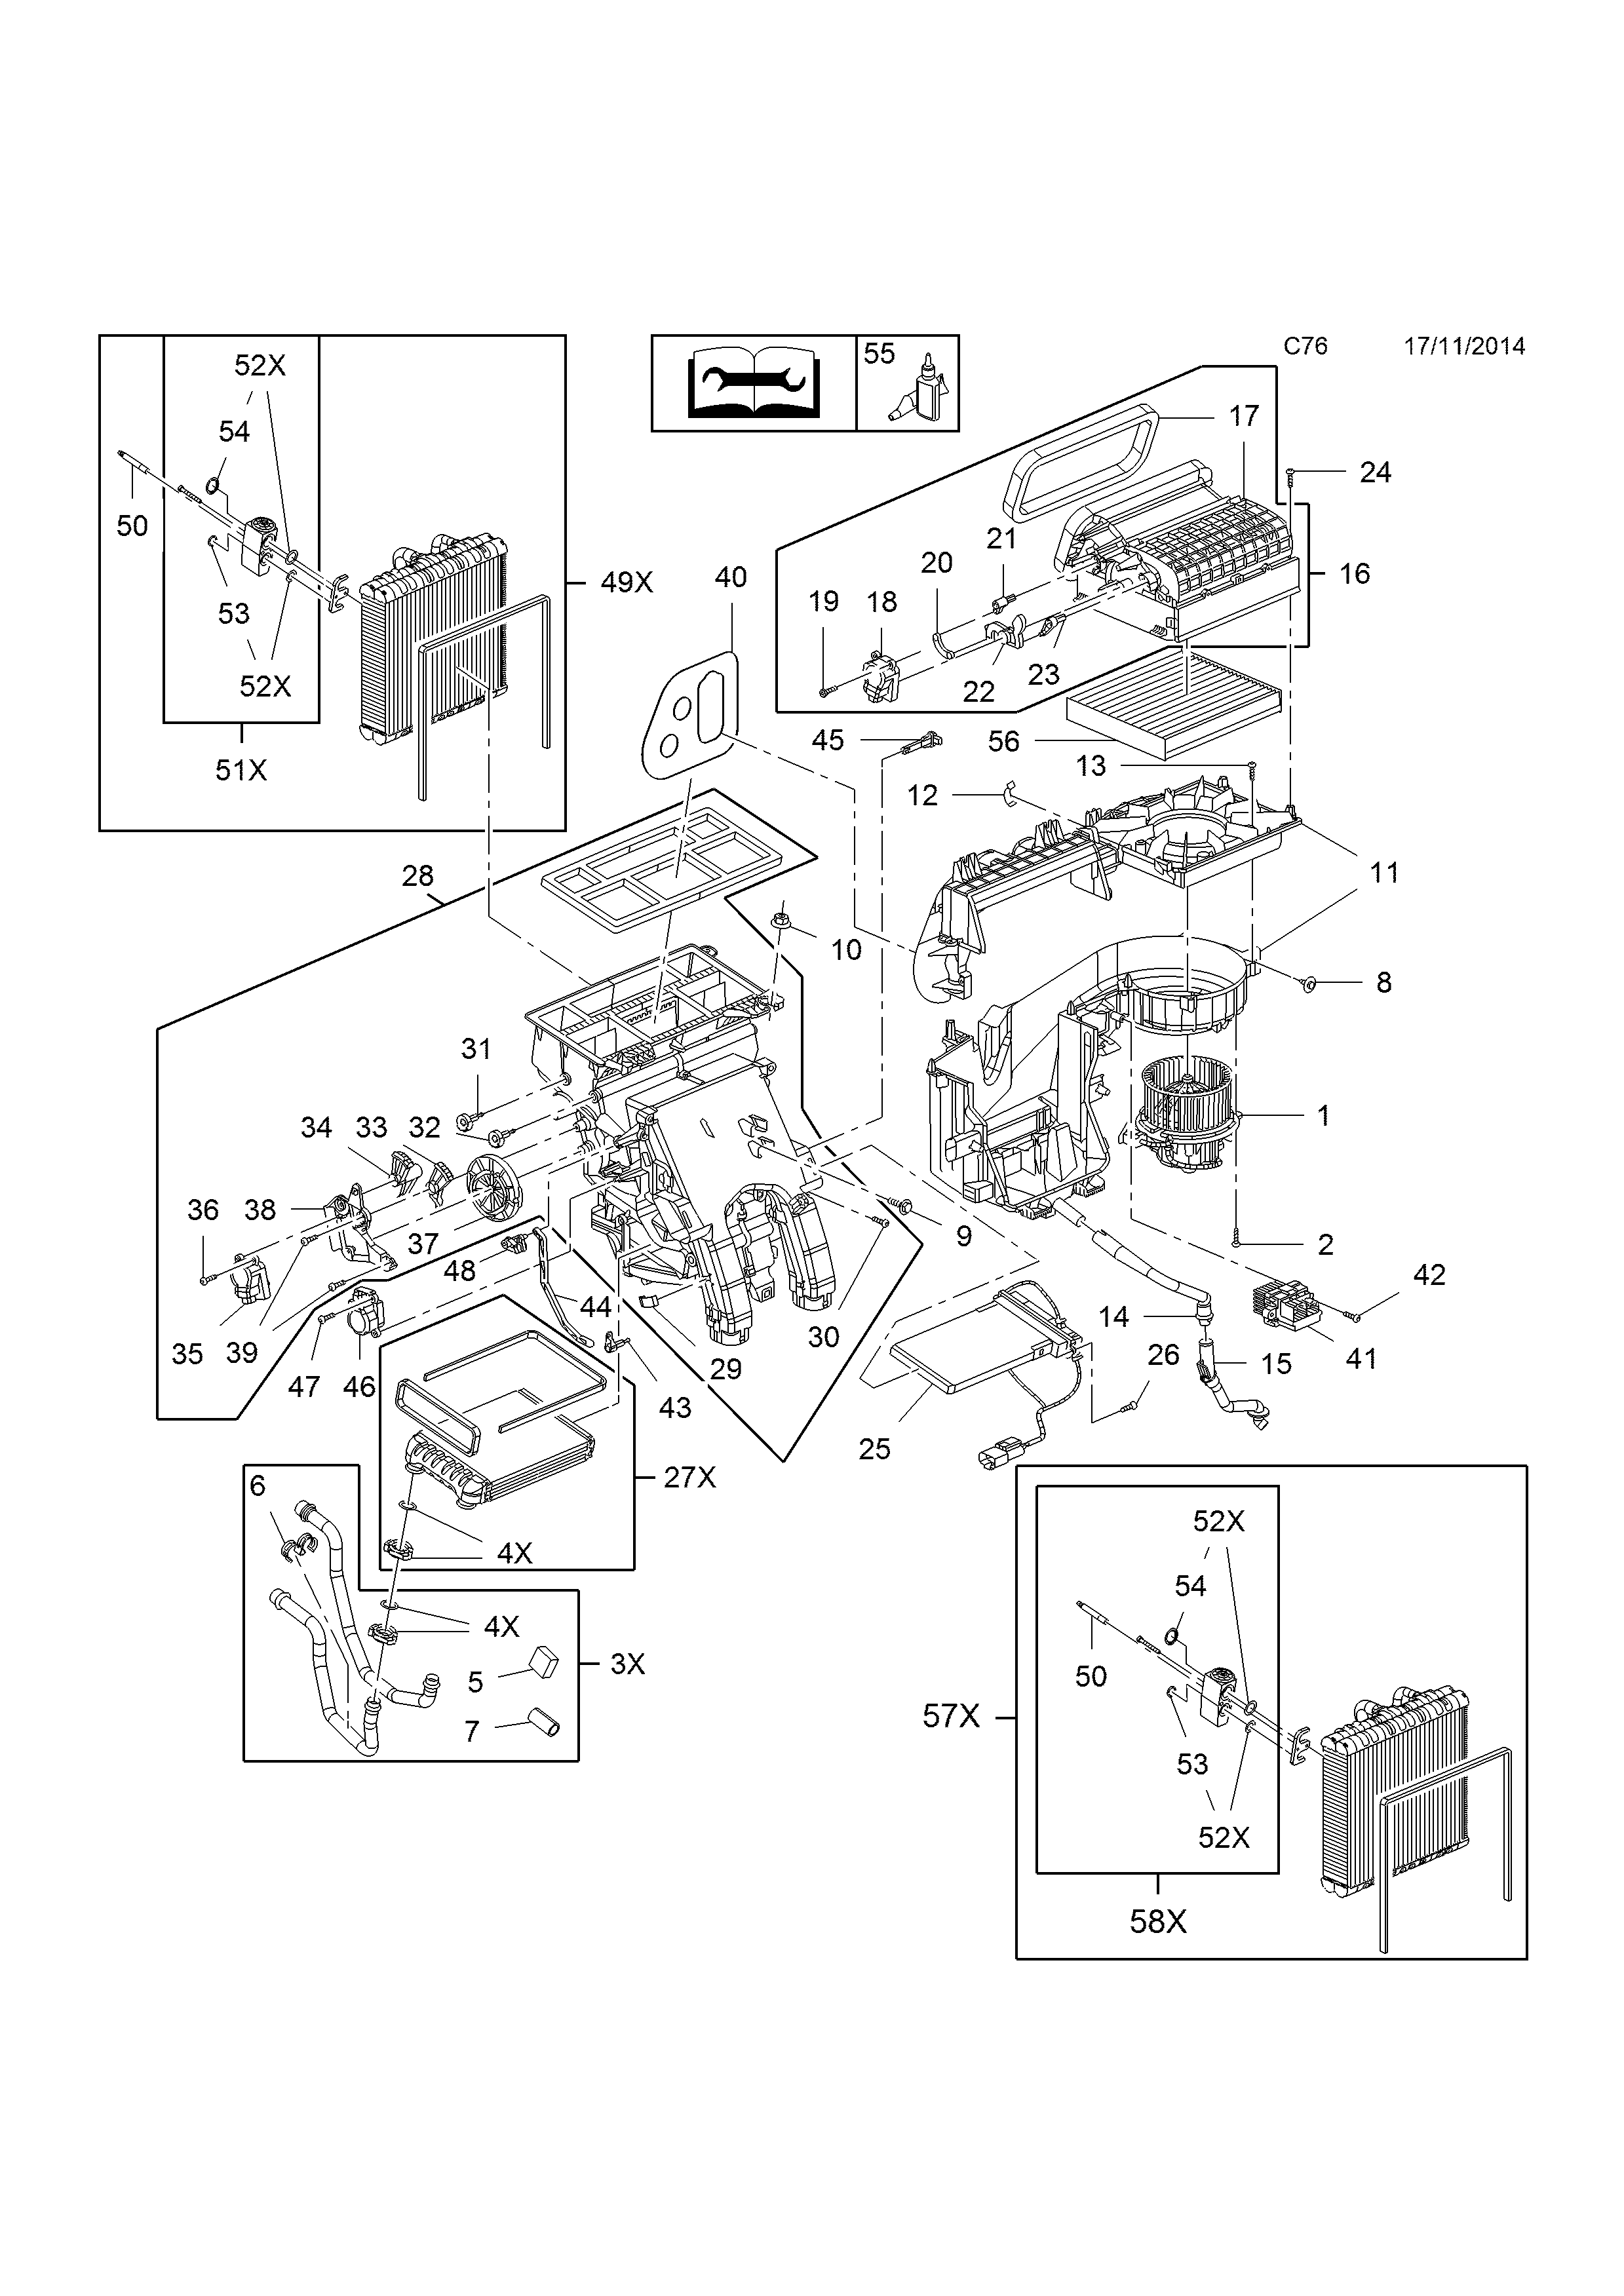 Vauxhall Zafira C 2012 Body Interior Fittings 6 Heater Air Conditioning Schematic 25 11 Gm Part Number Genuine Description Range